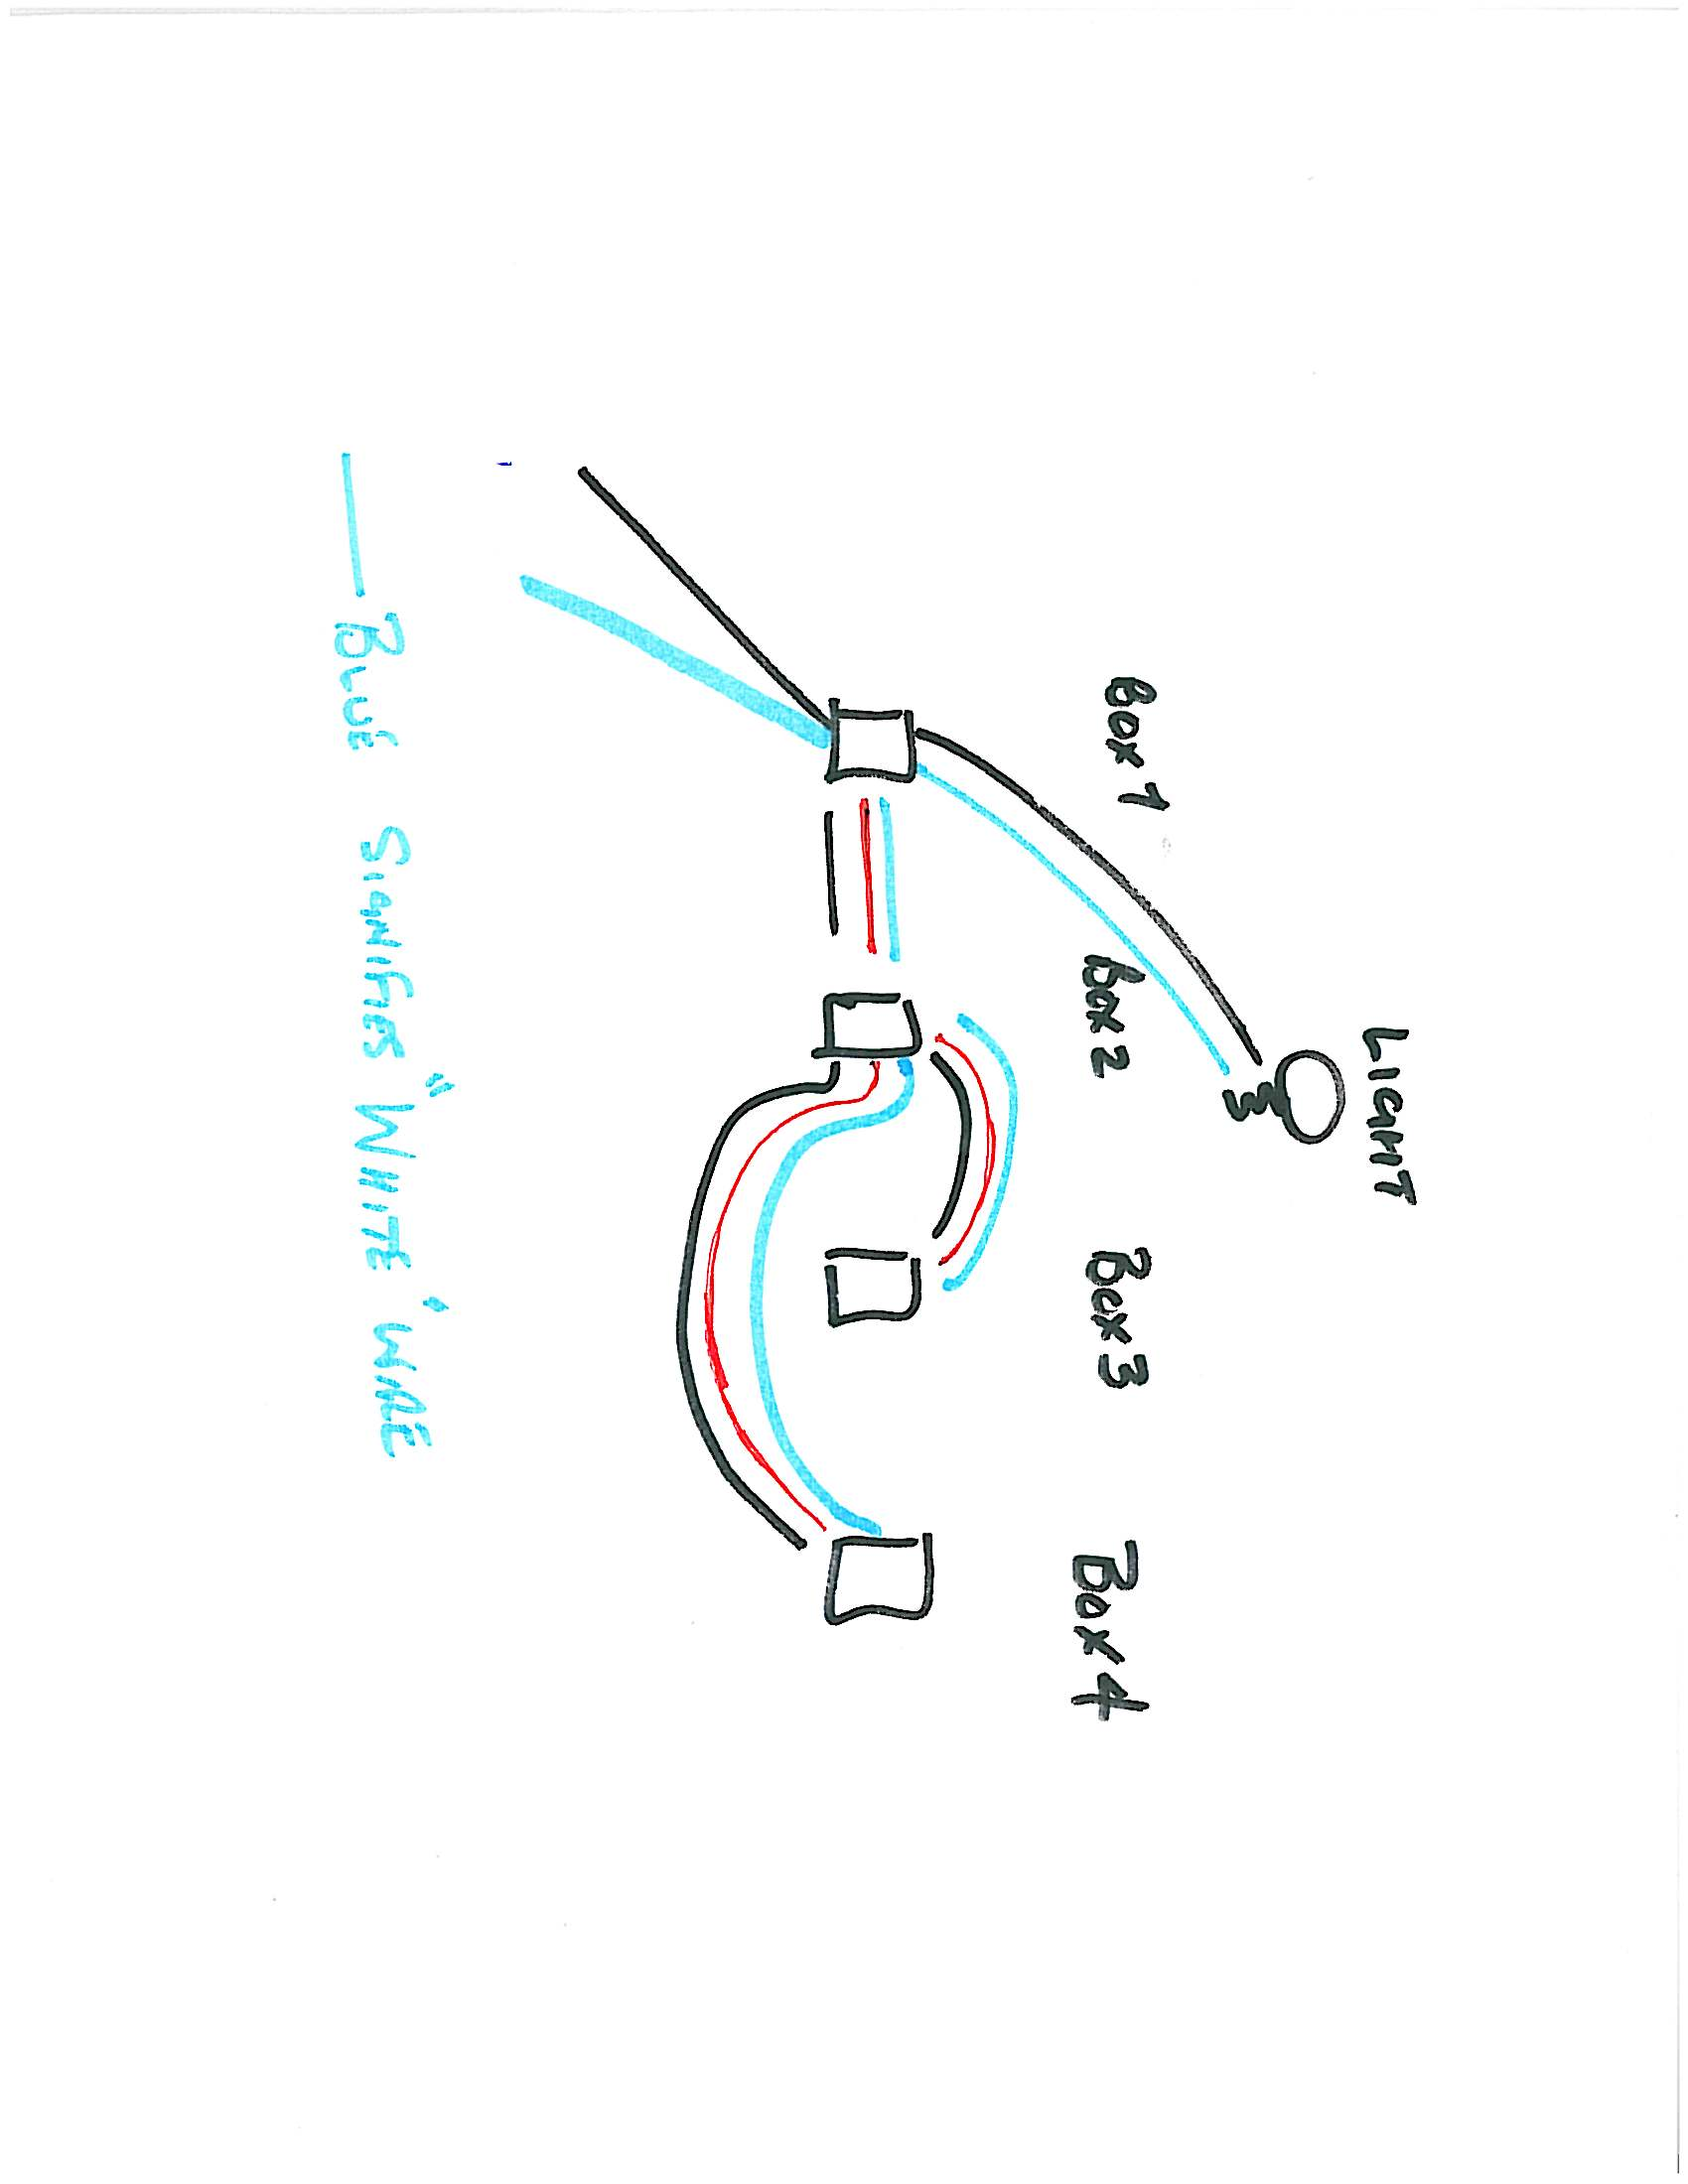 hight resolution of can i use 14 3 wire to connect a new switch on a branch in a 4 way circuit